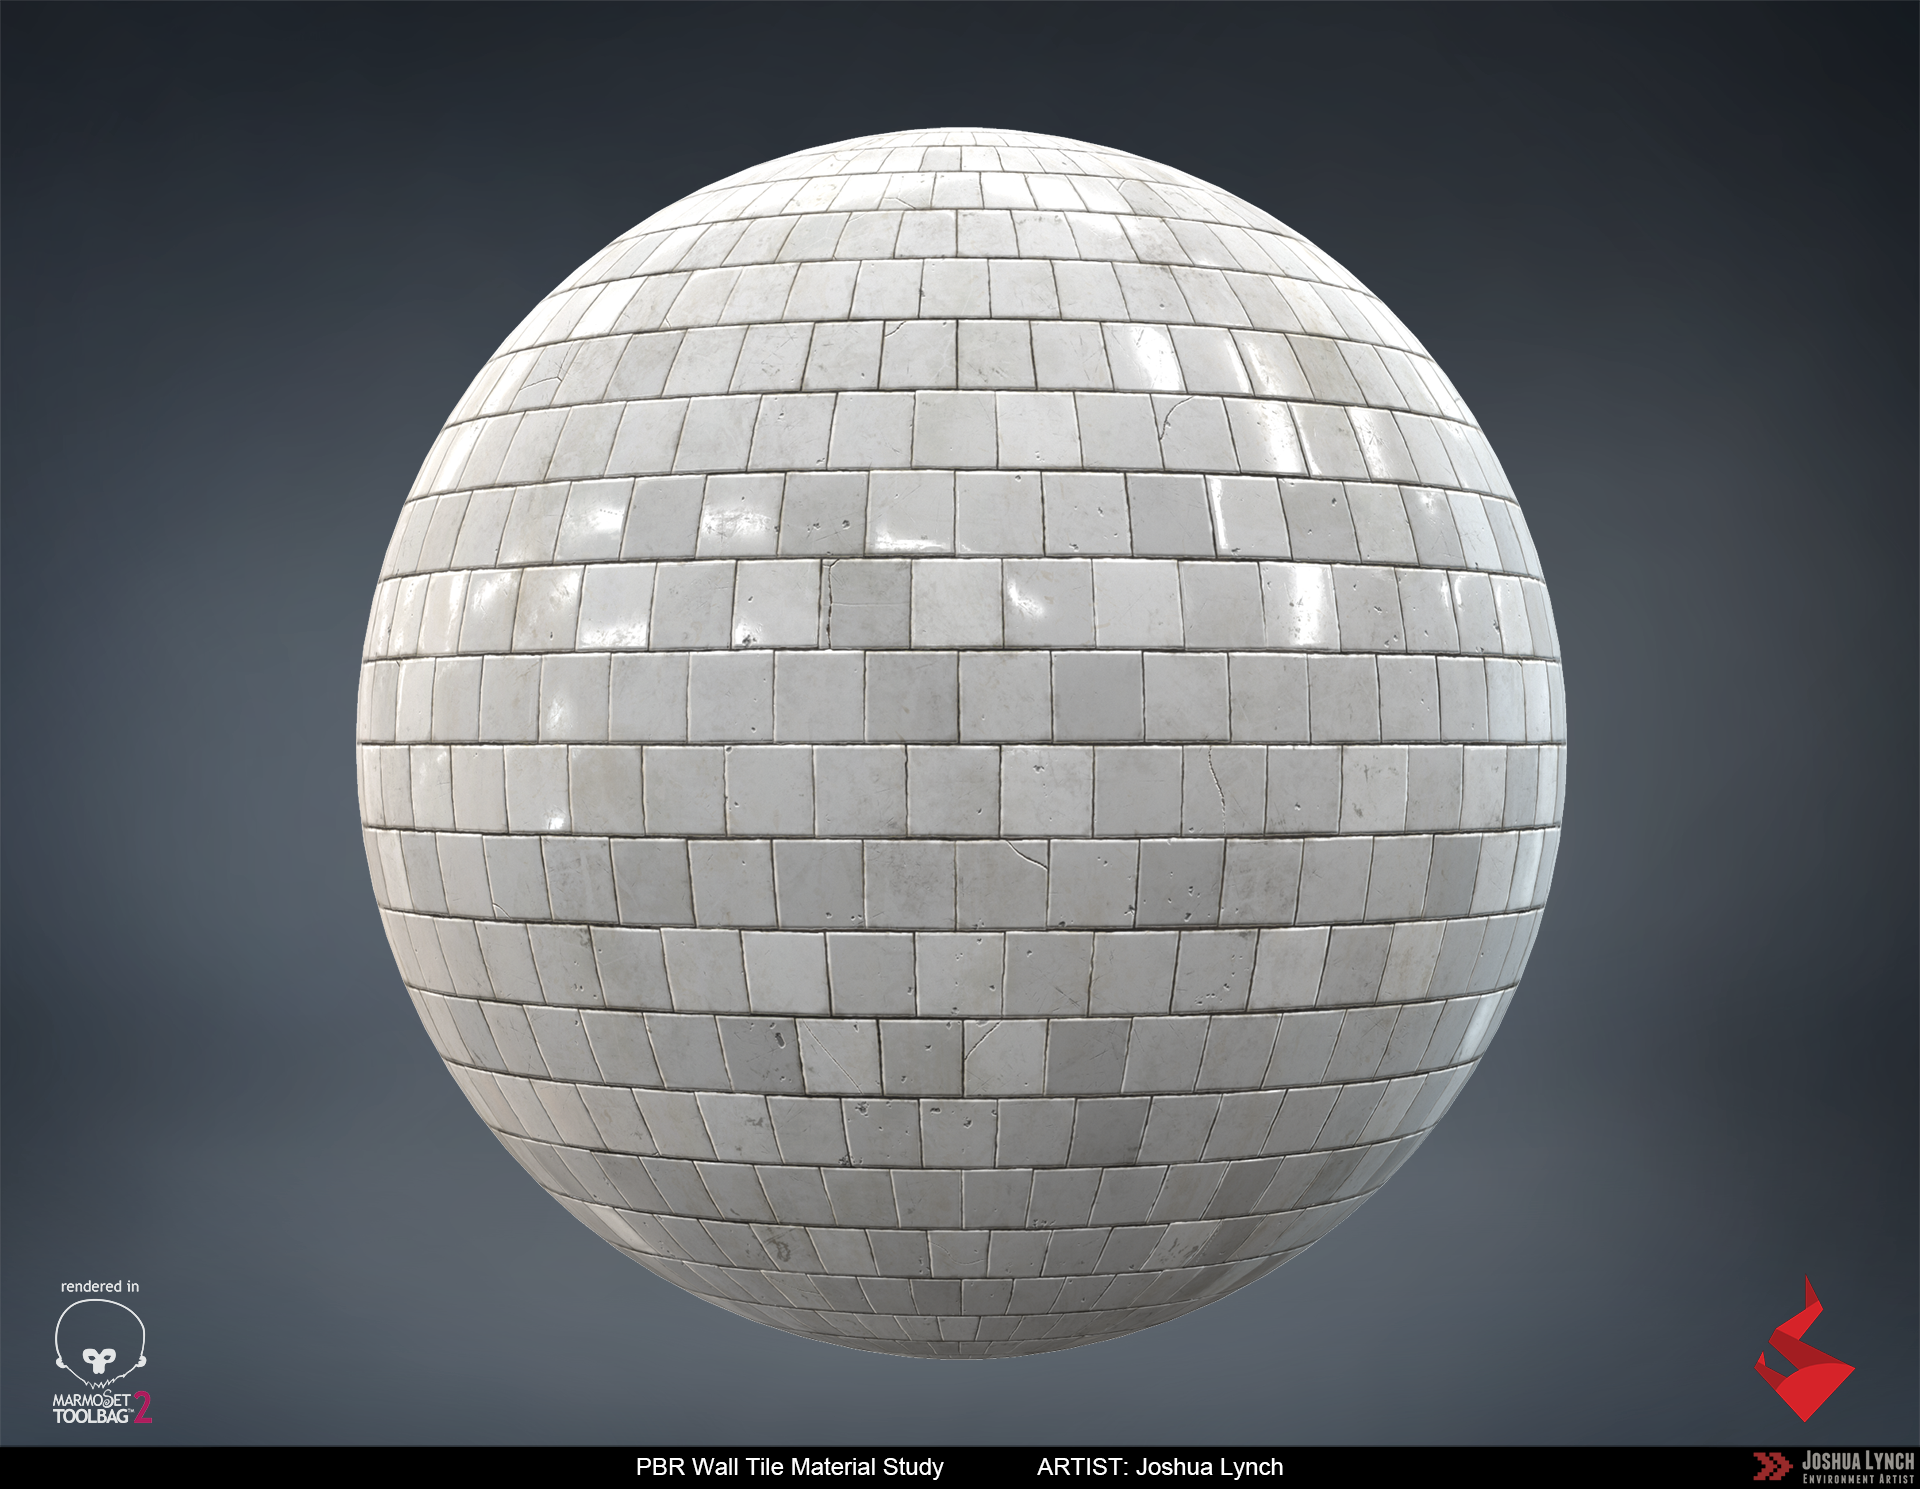 Subway_Wall_Tile_Sphere_Layout_Comp_Josh_Lynch.png